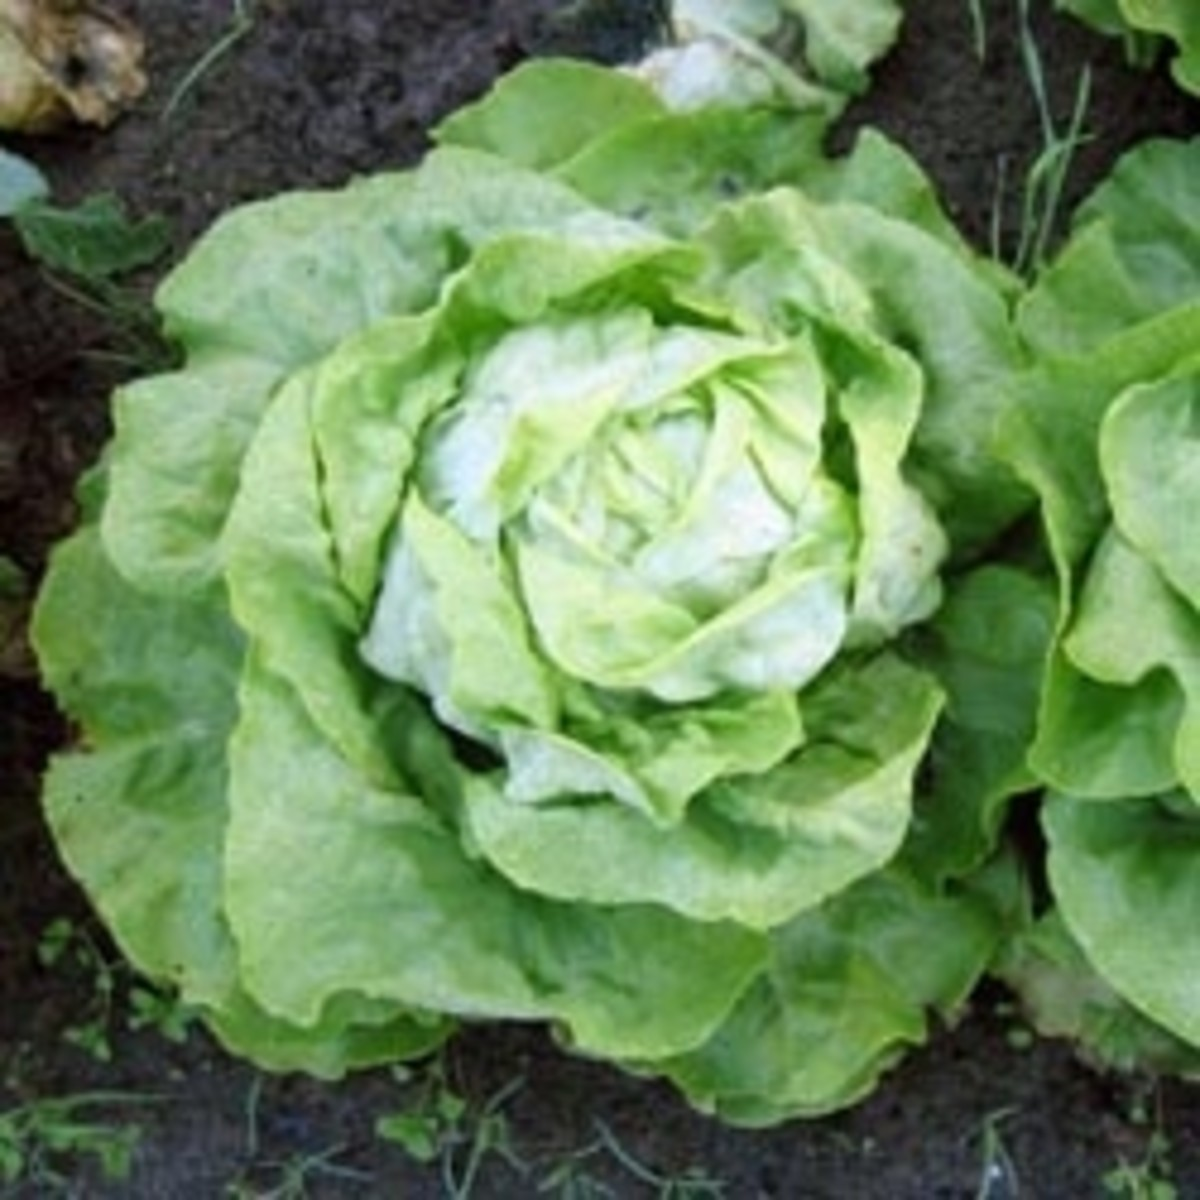 Biological control of the lettuce root aphid